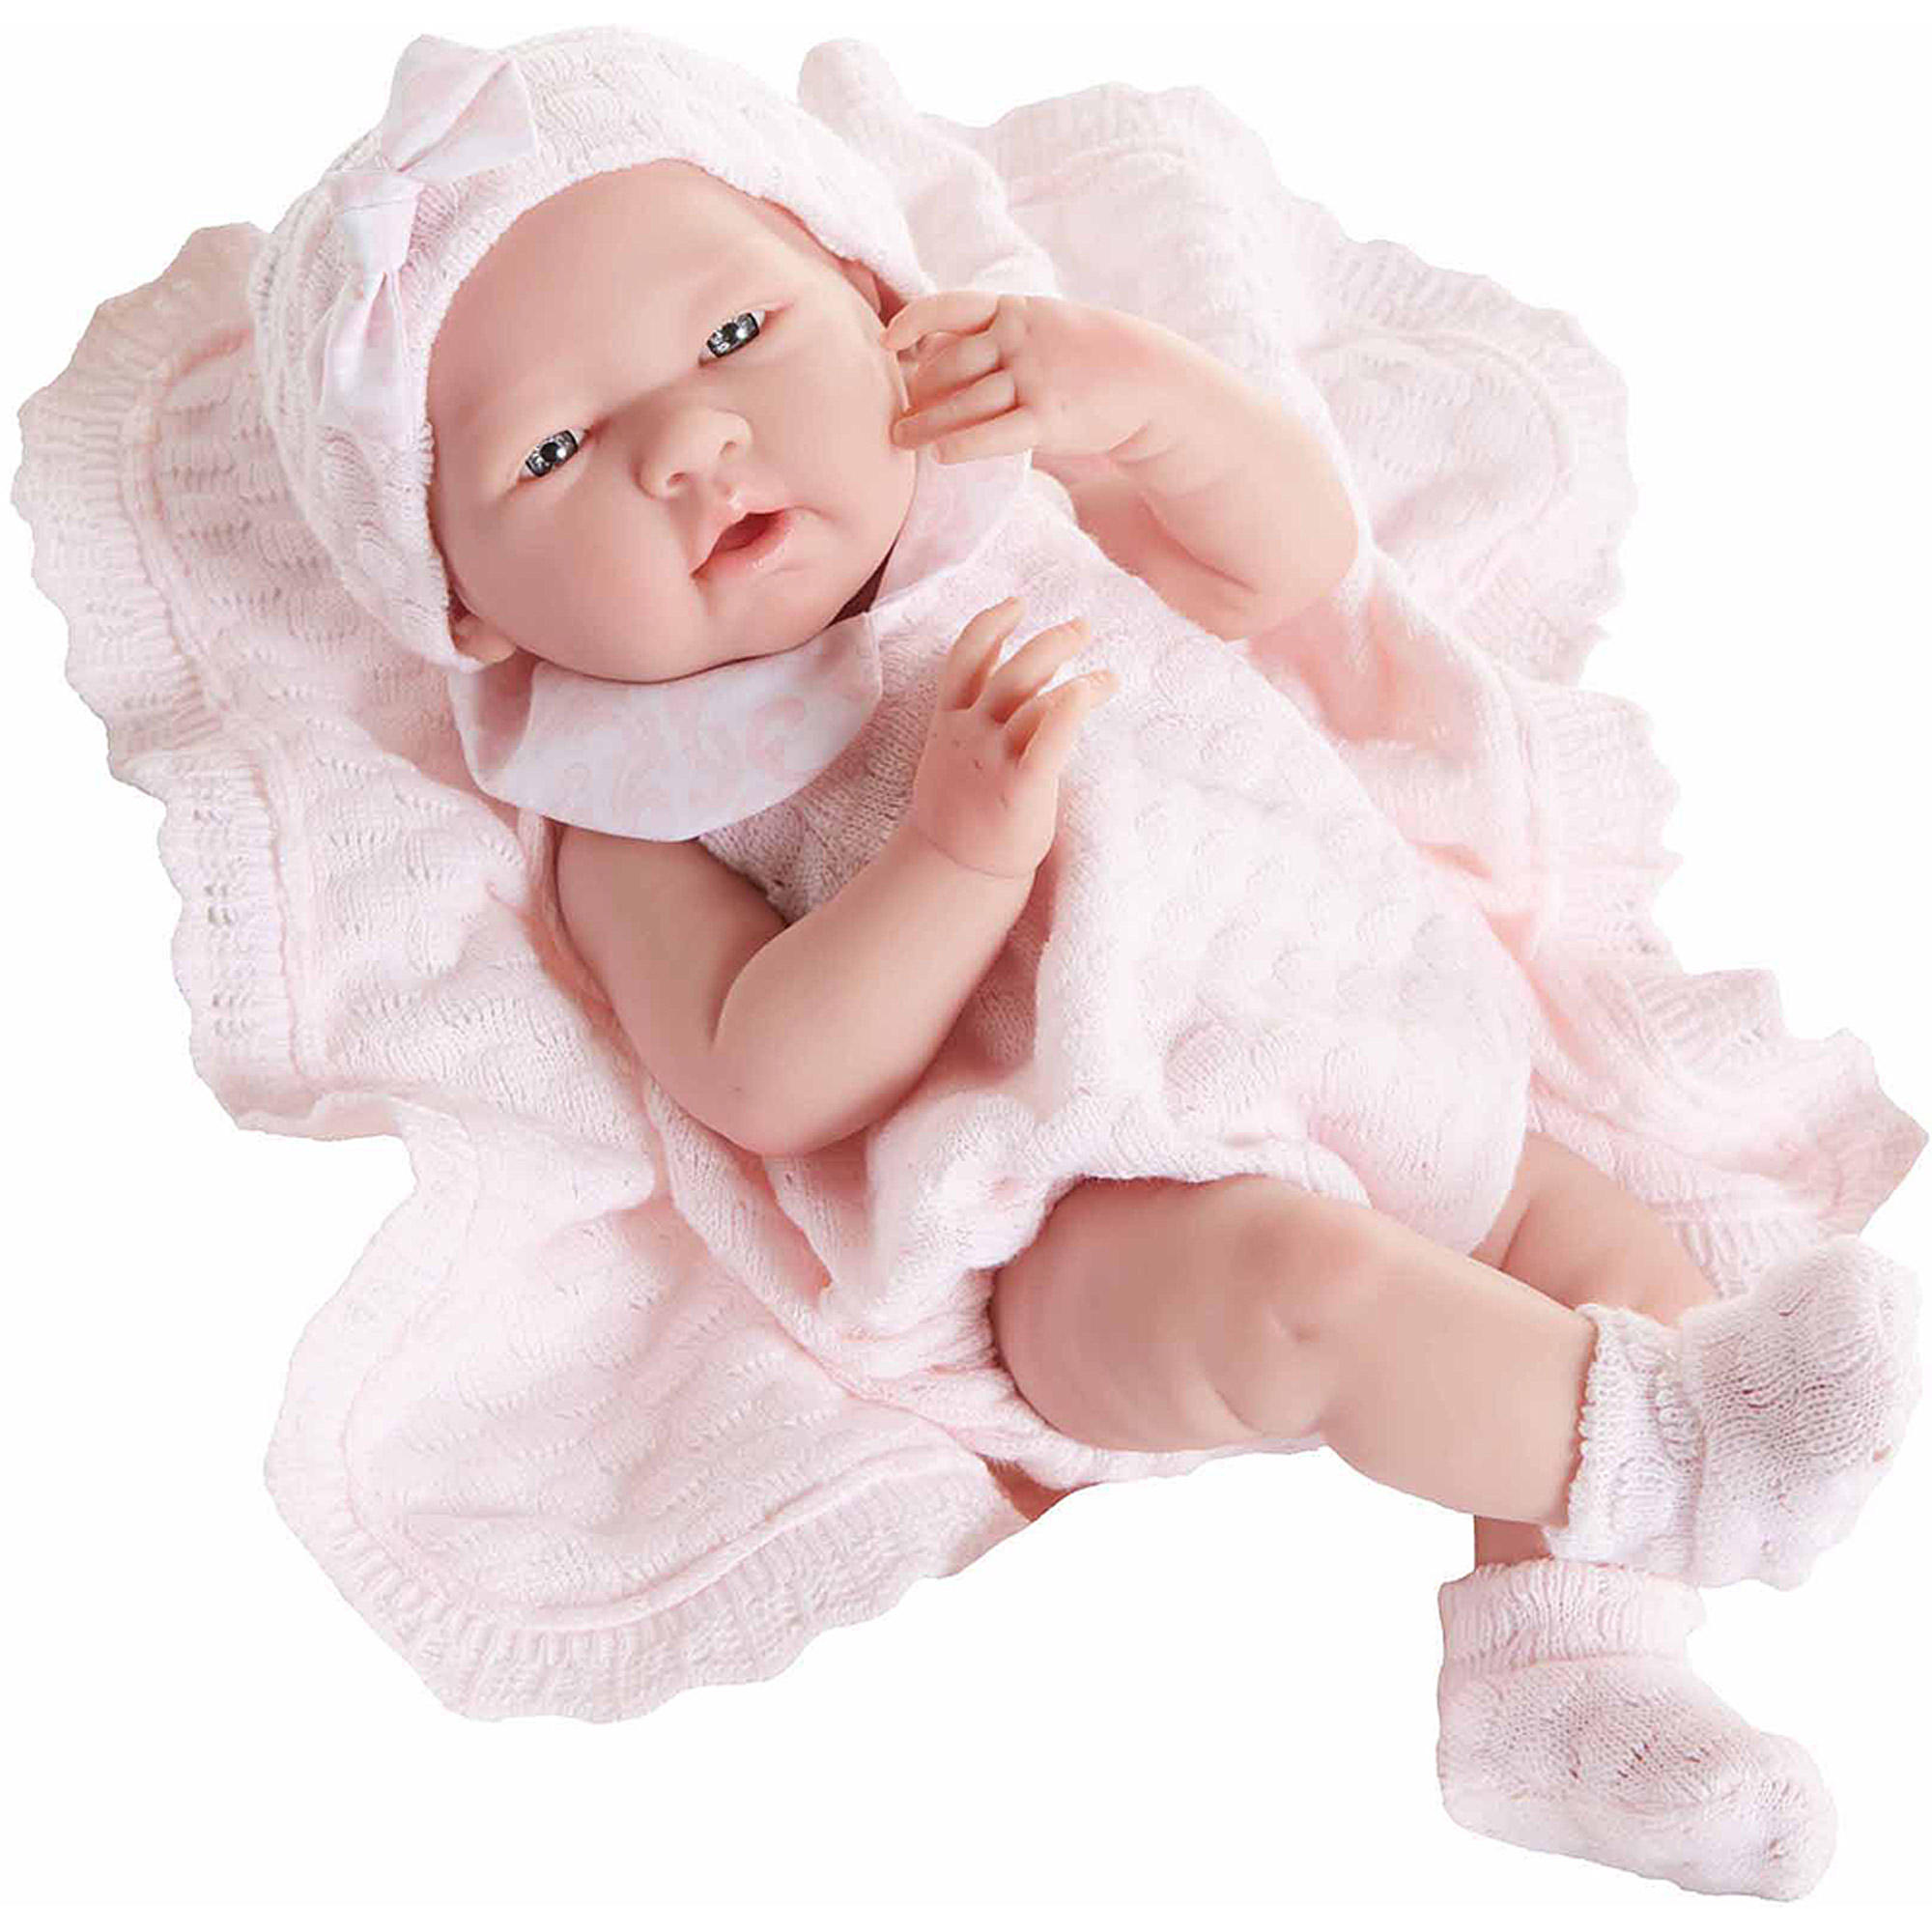 "La Newborn 15"" All-Vinyl Life-Like Baby Doll, Pretty Pink Boutique Knit Set, Real... by JC TOYS"